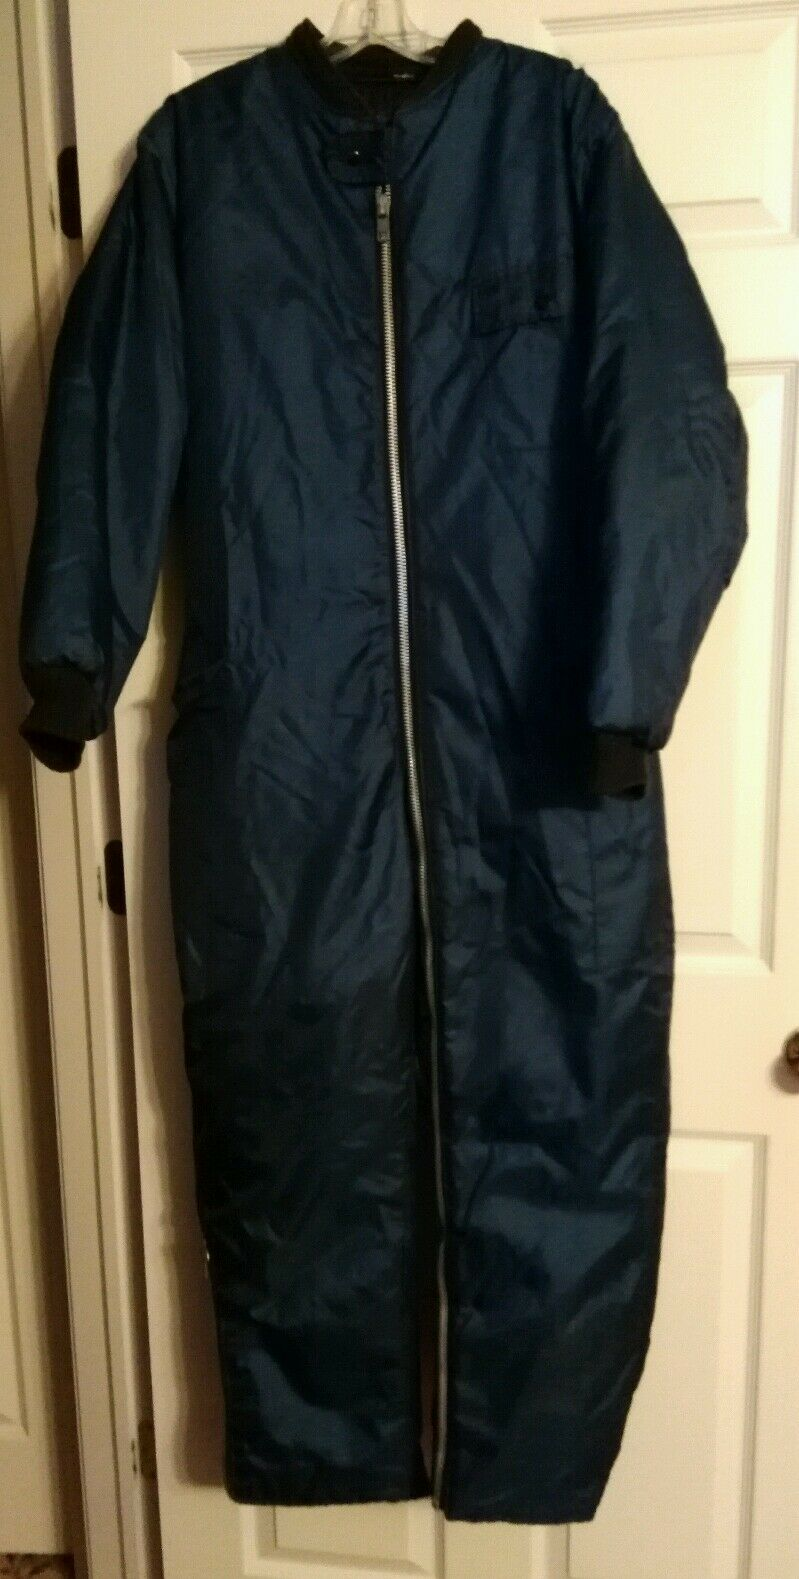 Medium Unisex bluee Vintage Insulated Snowmobile Suit.   outlet store